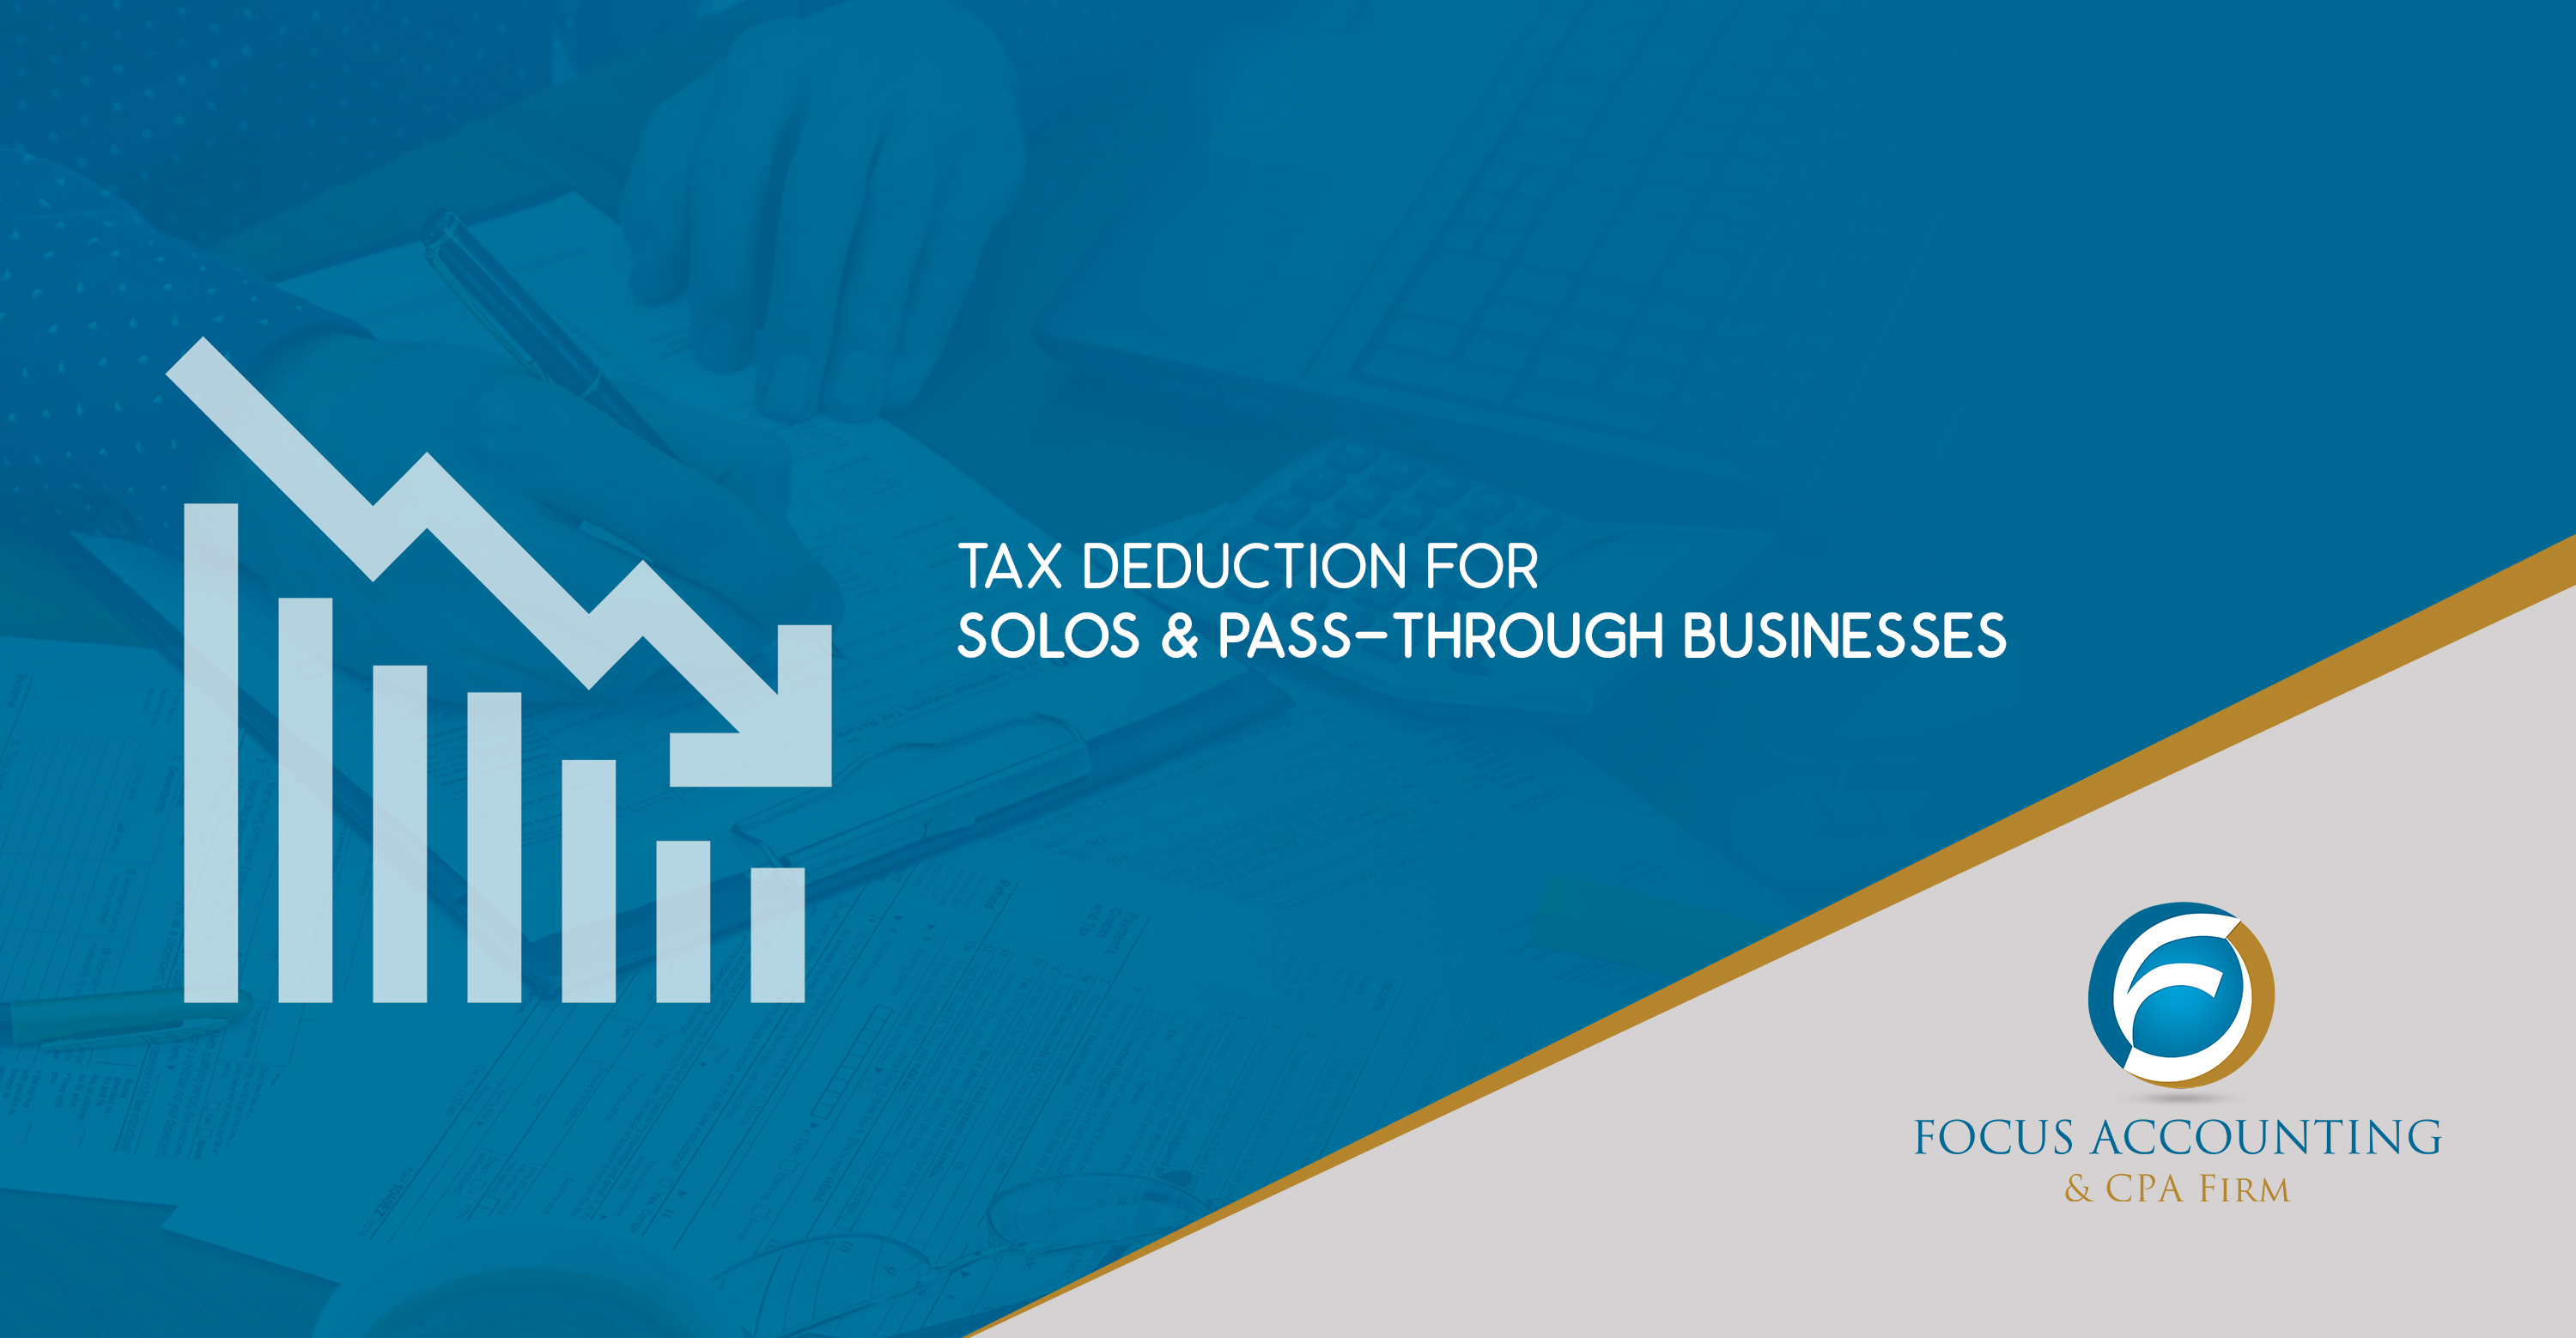 Tax Deduction for Solos & Pass-through Businesses